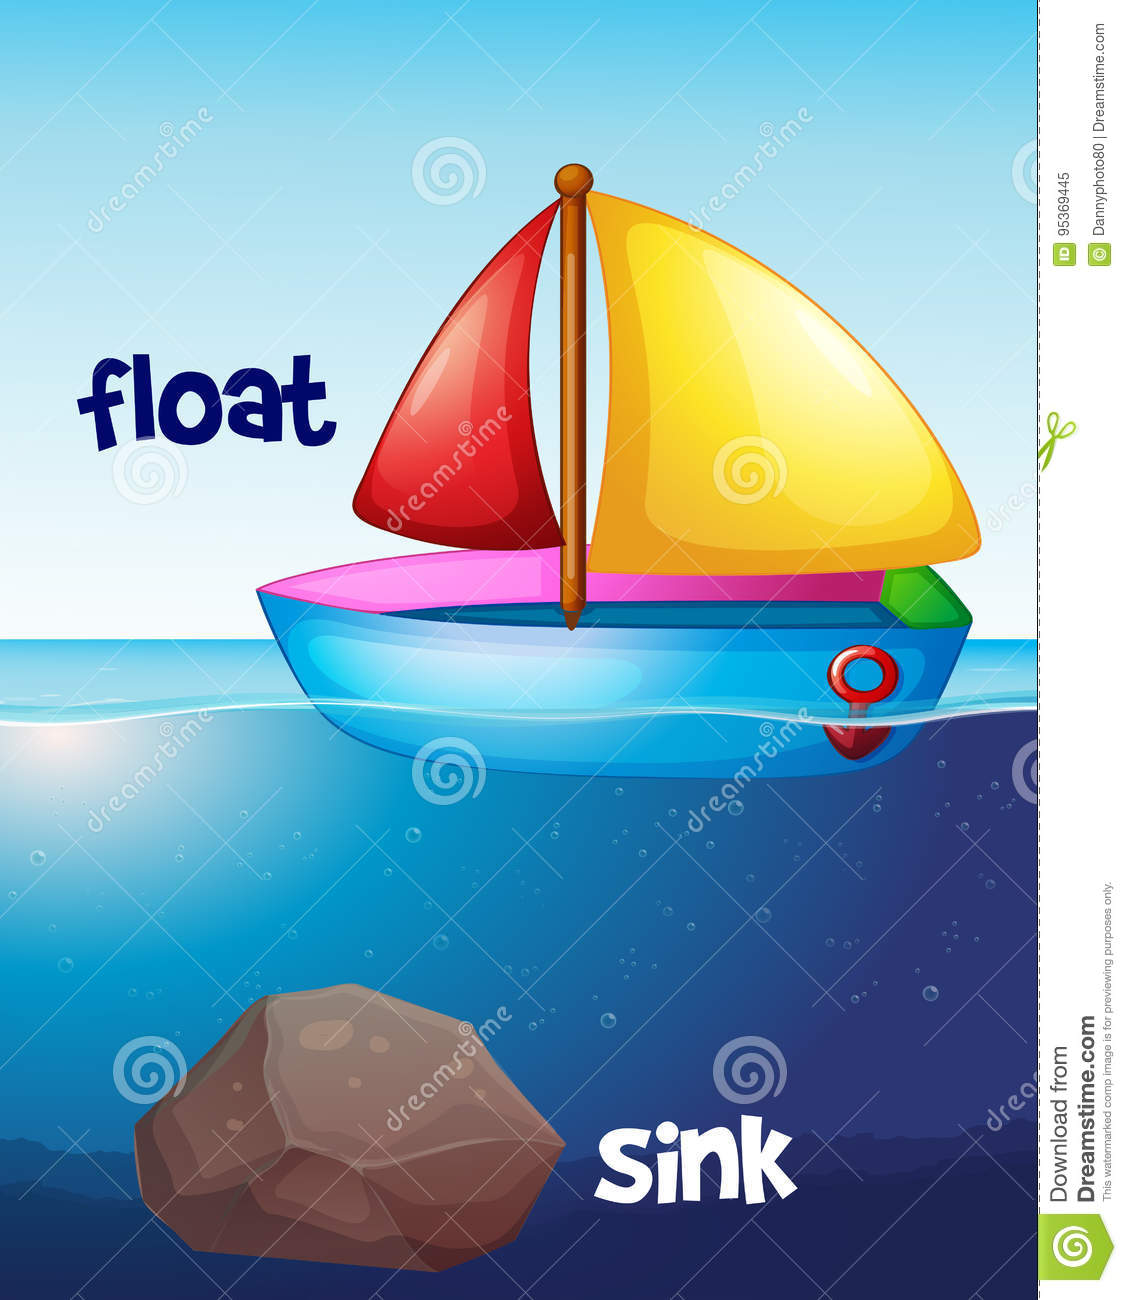 Opposite Words For Float And Sink Stock Vector - Illustration of ship, vacation: 95369445